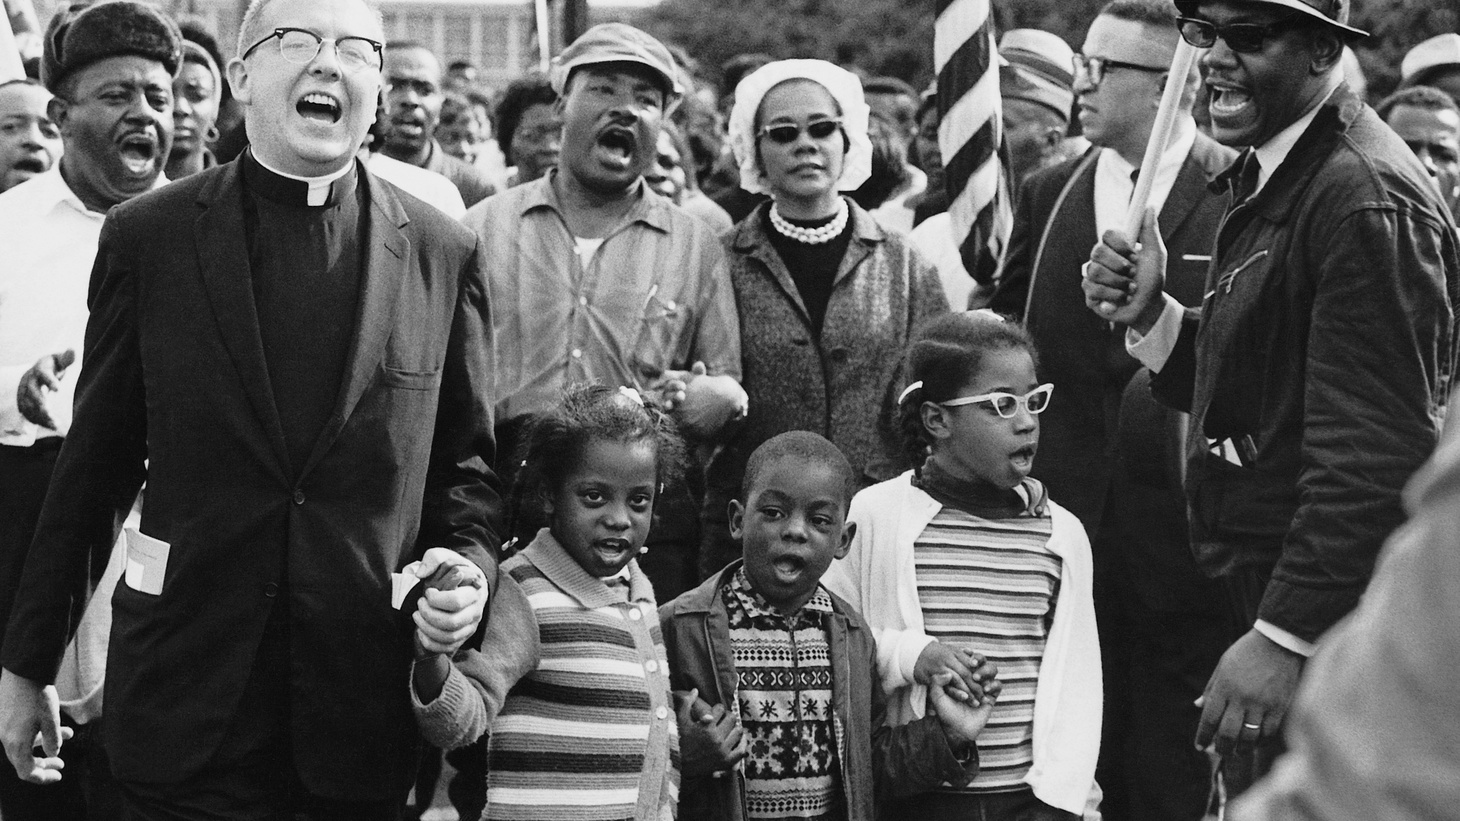 Today on Press Play, we hear from the filmmaker behind Selma, which portrays Martin Luther King, Jr.'s fight for the Voting Rights Act in 1965. And we hear from a historian from that period who discusses some of the criticism's about the film's accuracy.